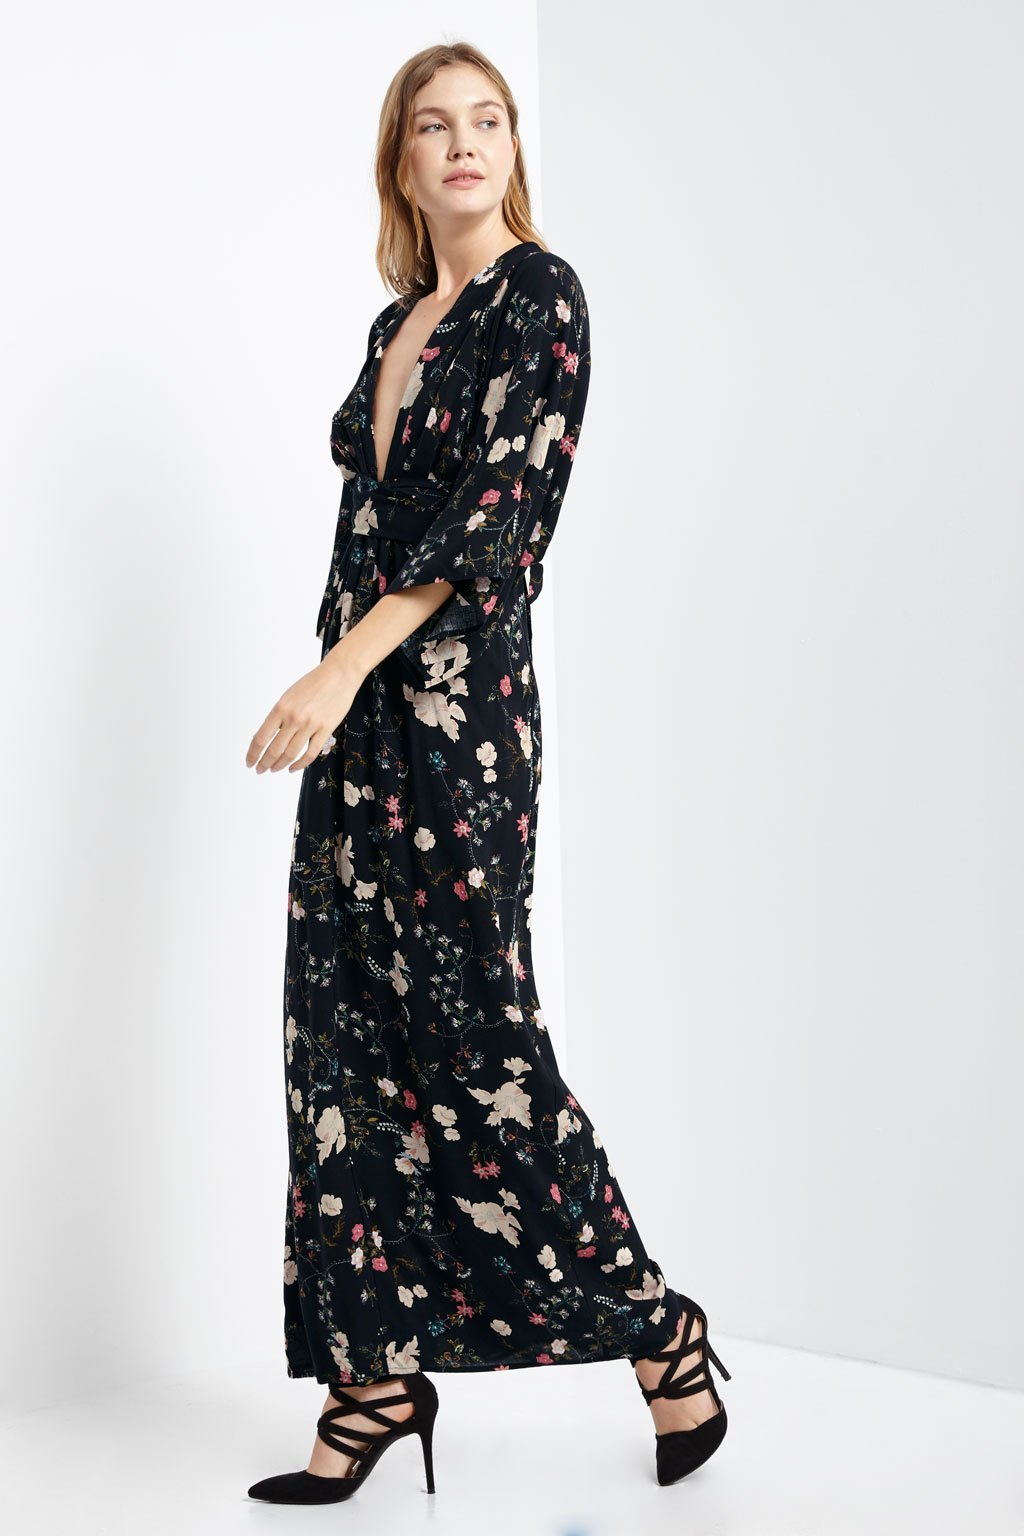 Poshsquare Dress S / Black Oen Floral Maxi Dress